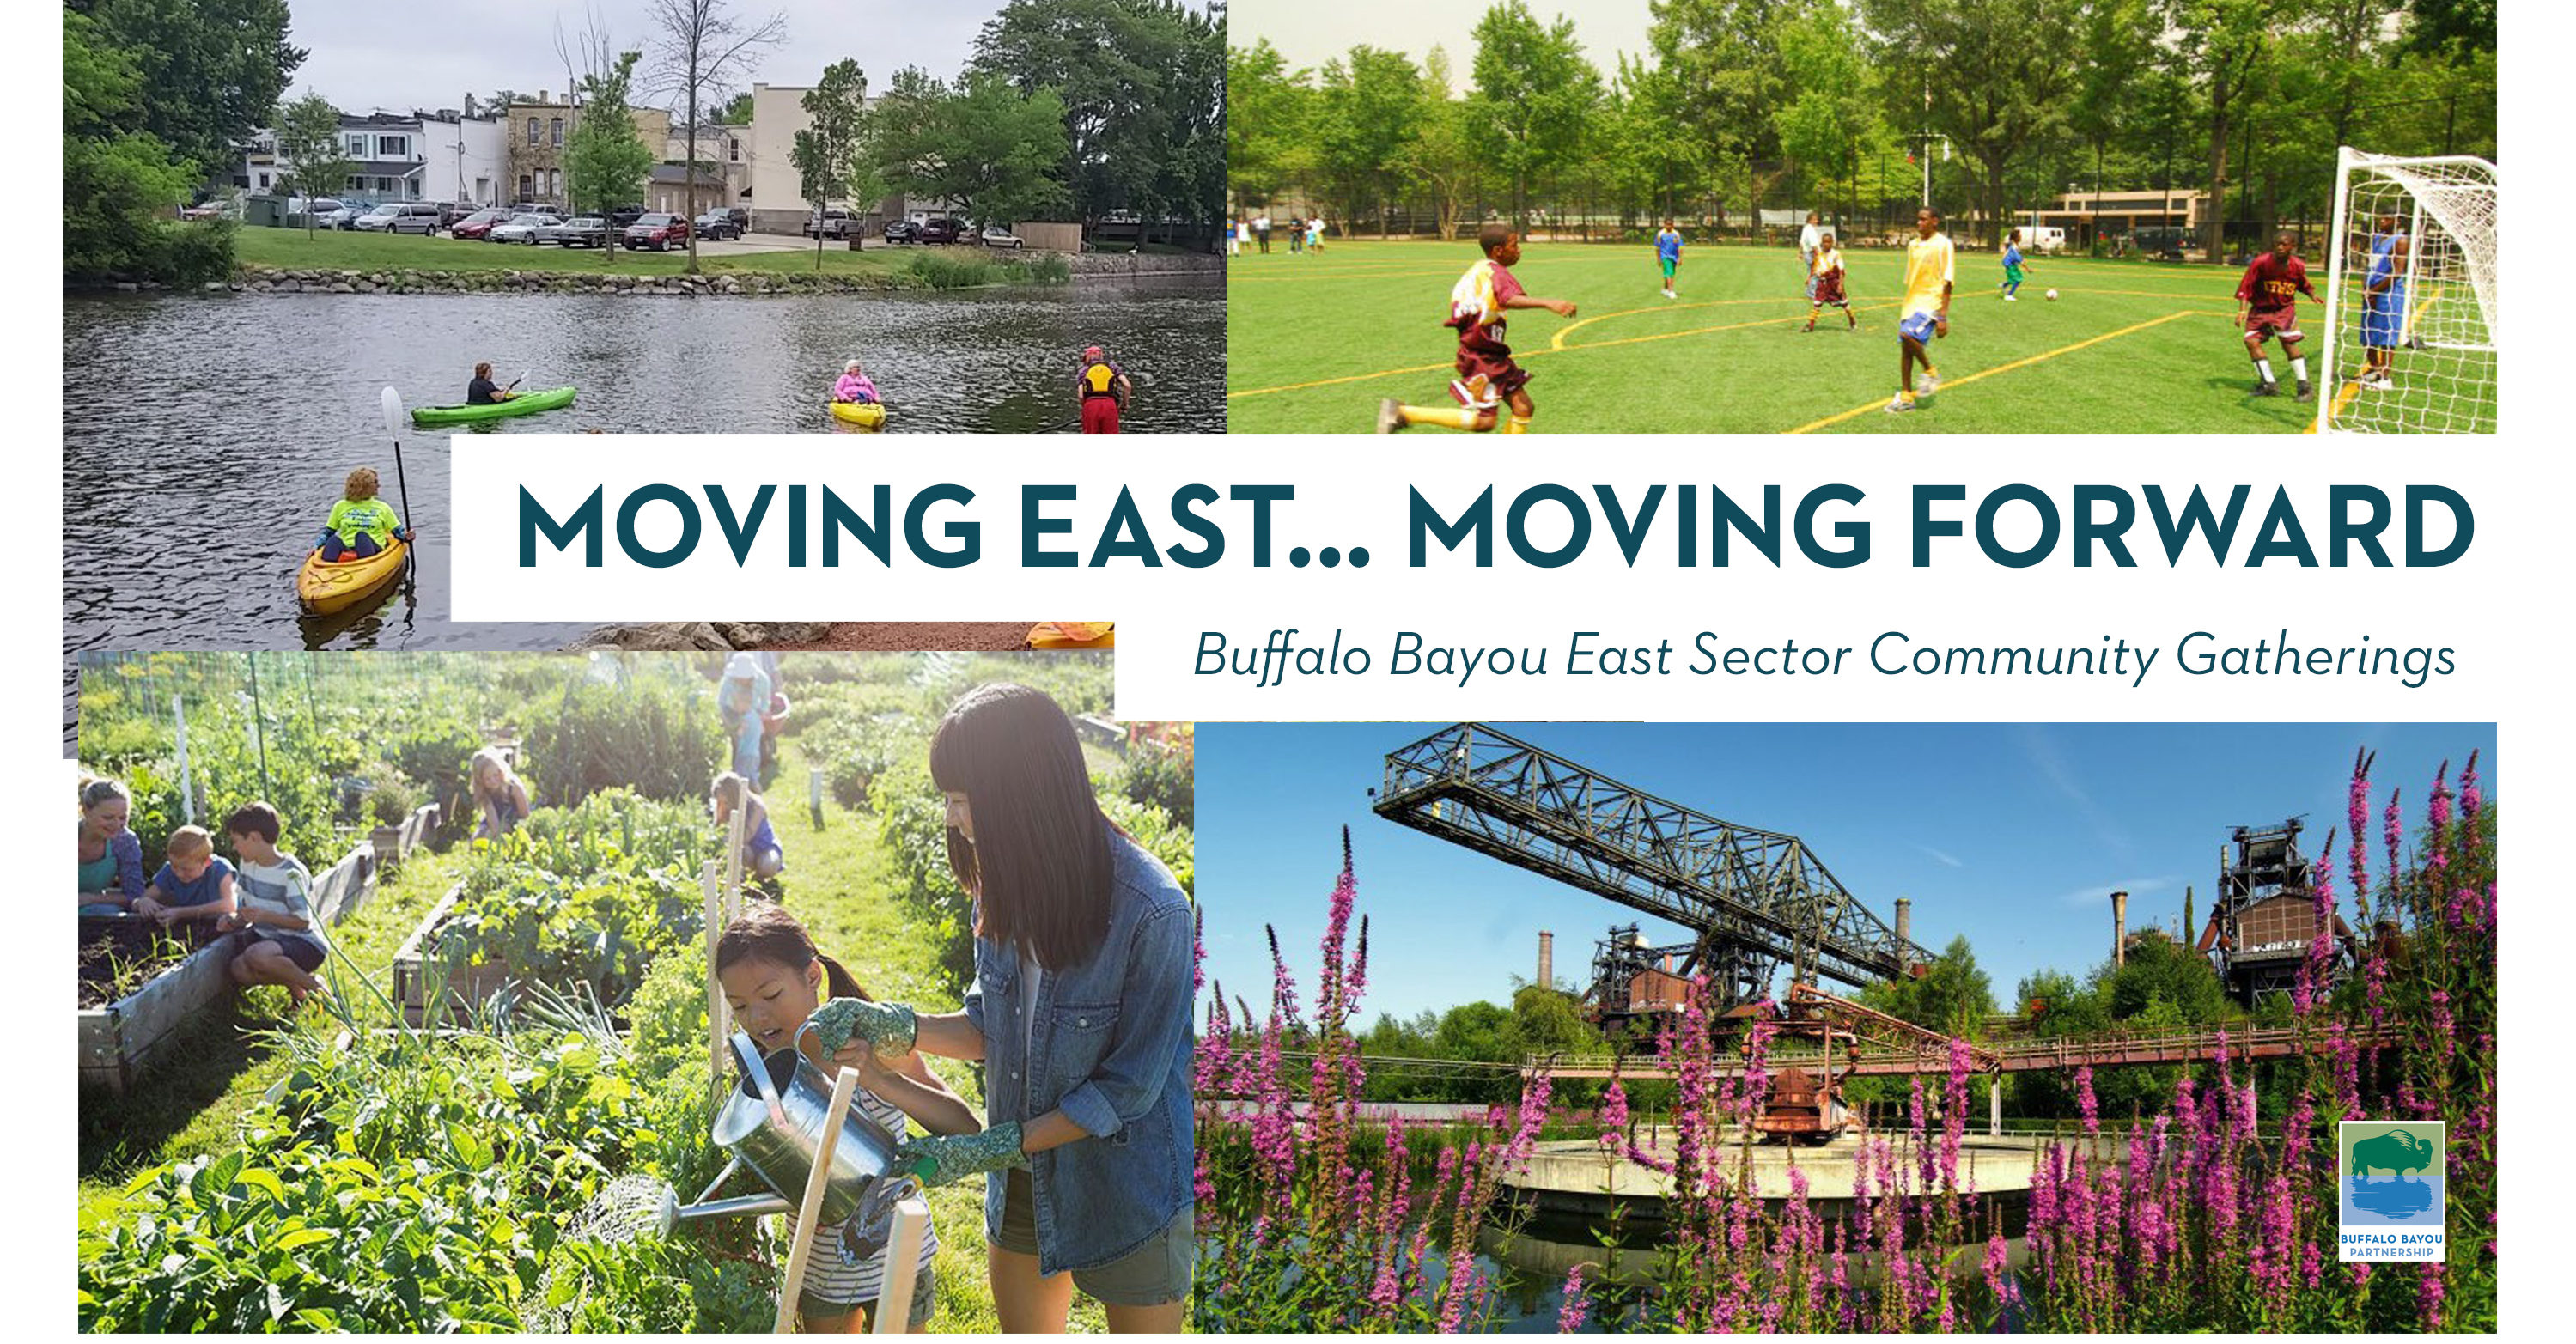 Moving East, Moving Forward: Buffalo Bayou East Sector Community Meeting @ The DeLuxe Theater | Houston | Texas | United States